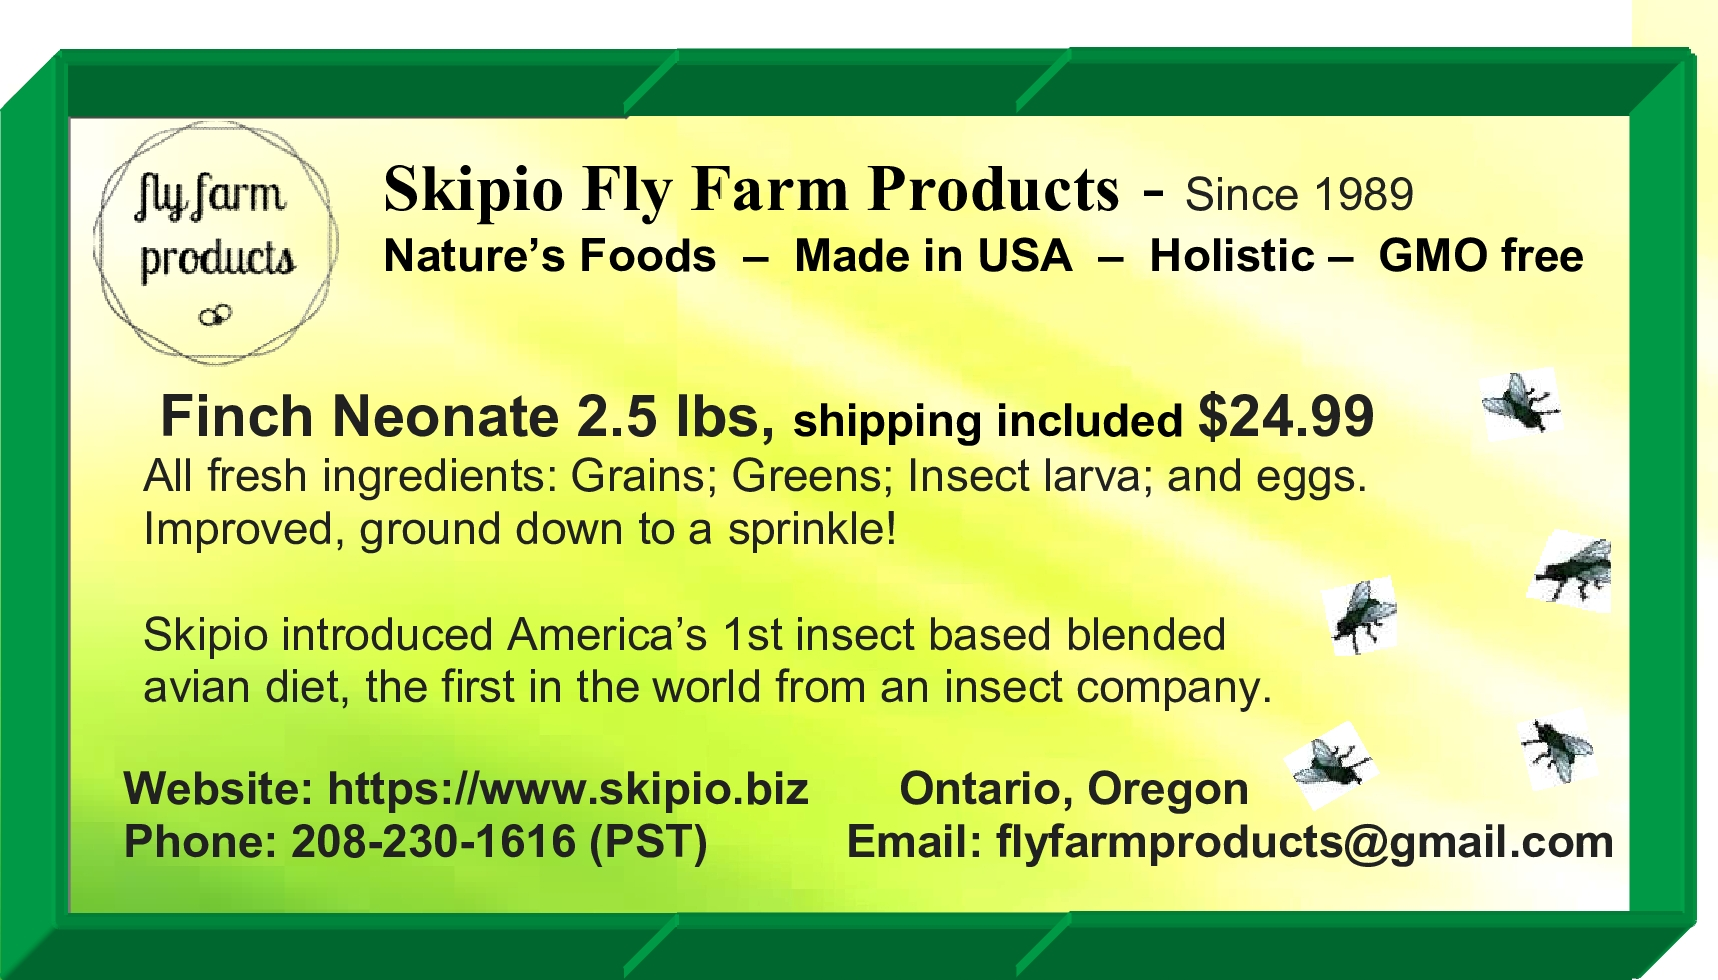 Skipio's Fly Farm Products